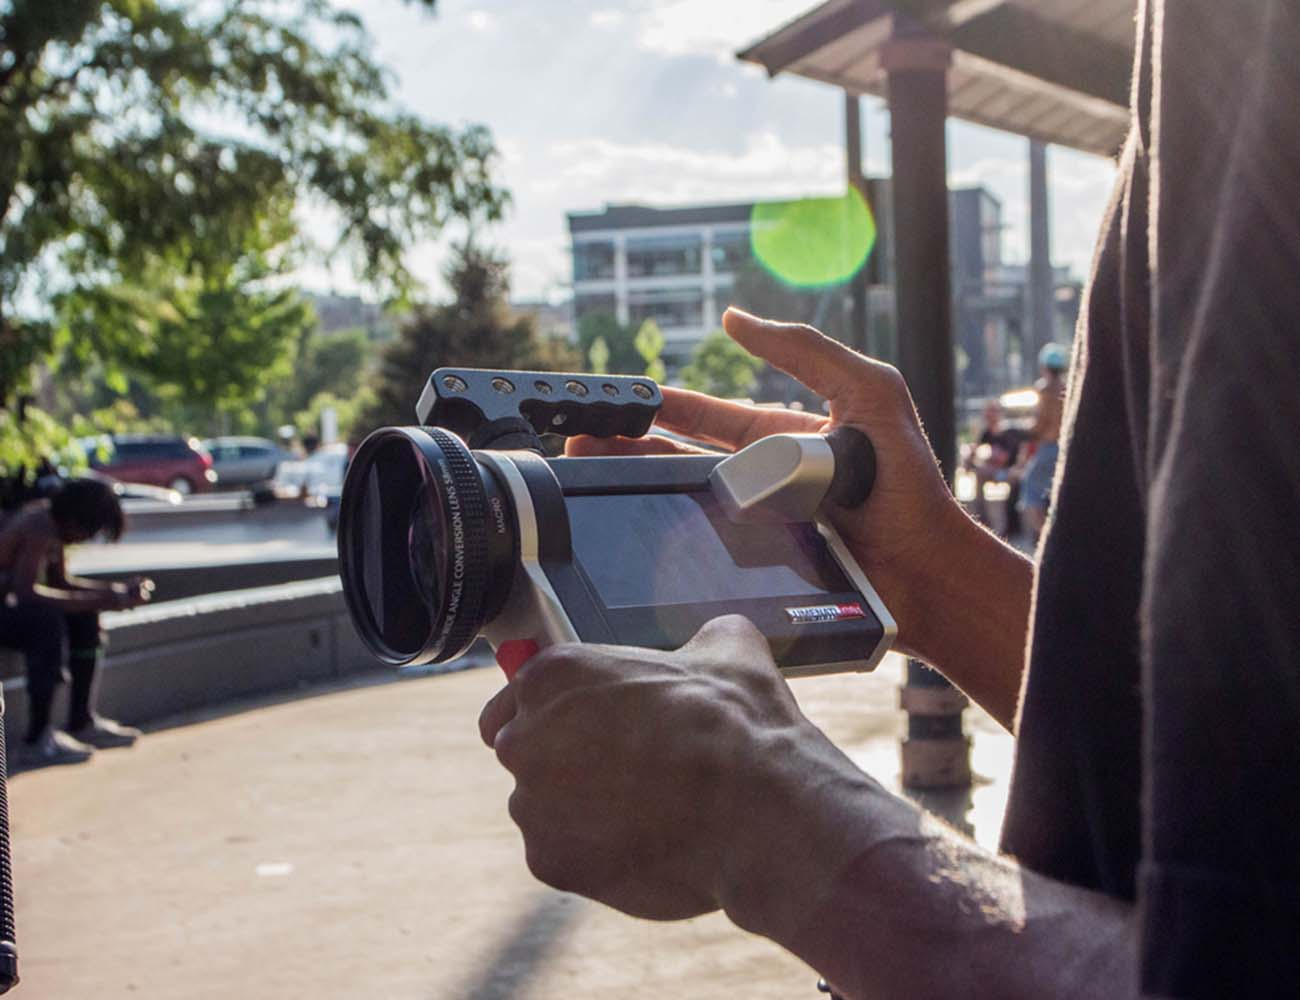 The World's First Cinematic Smartcase